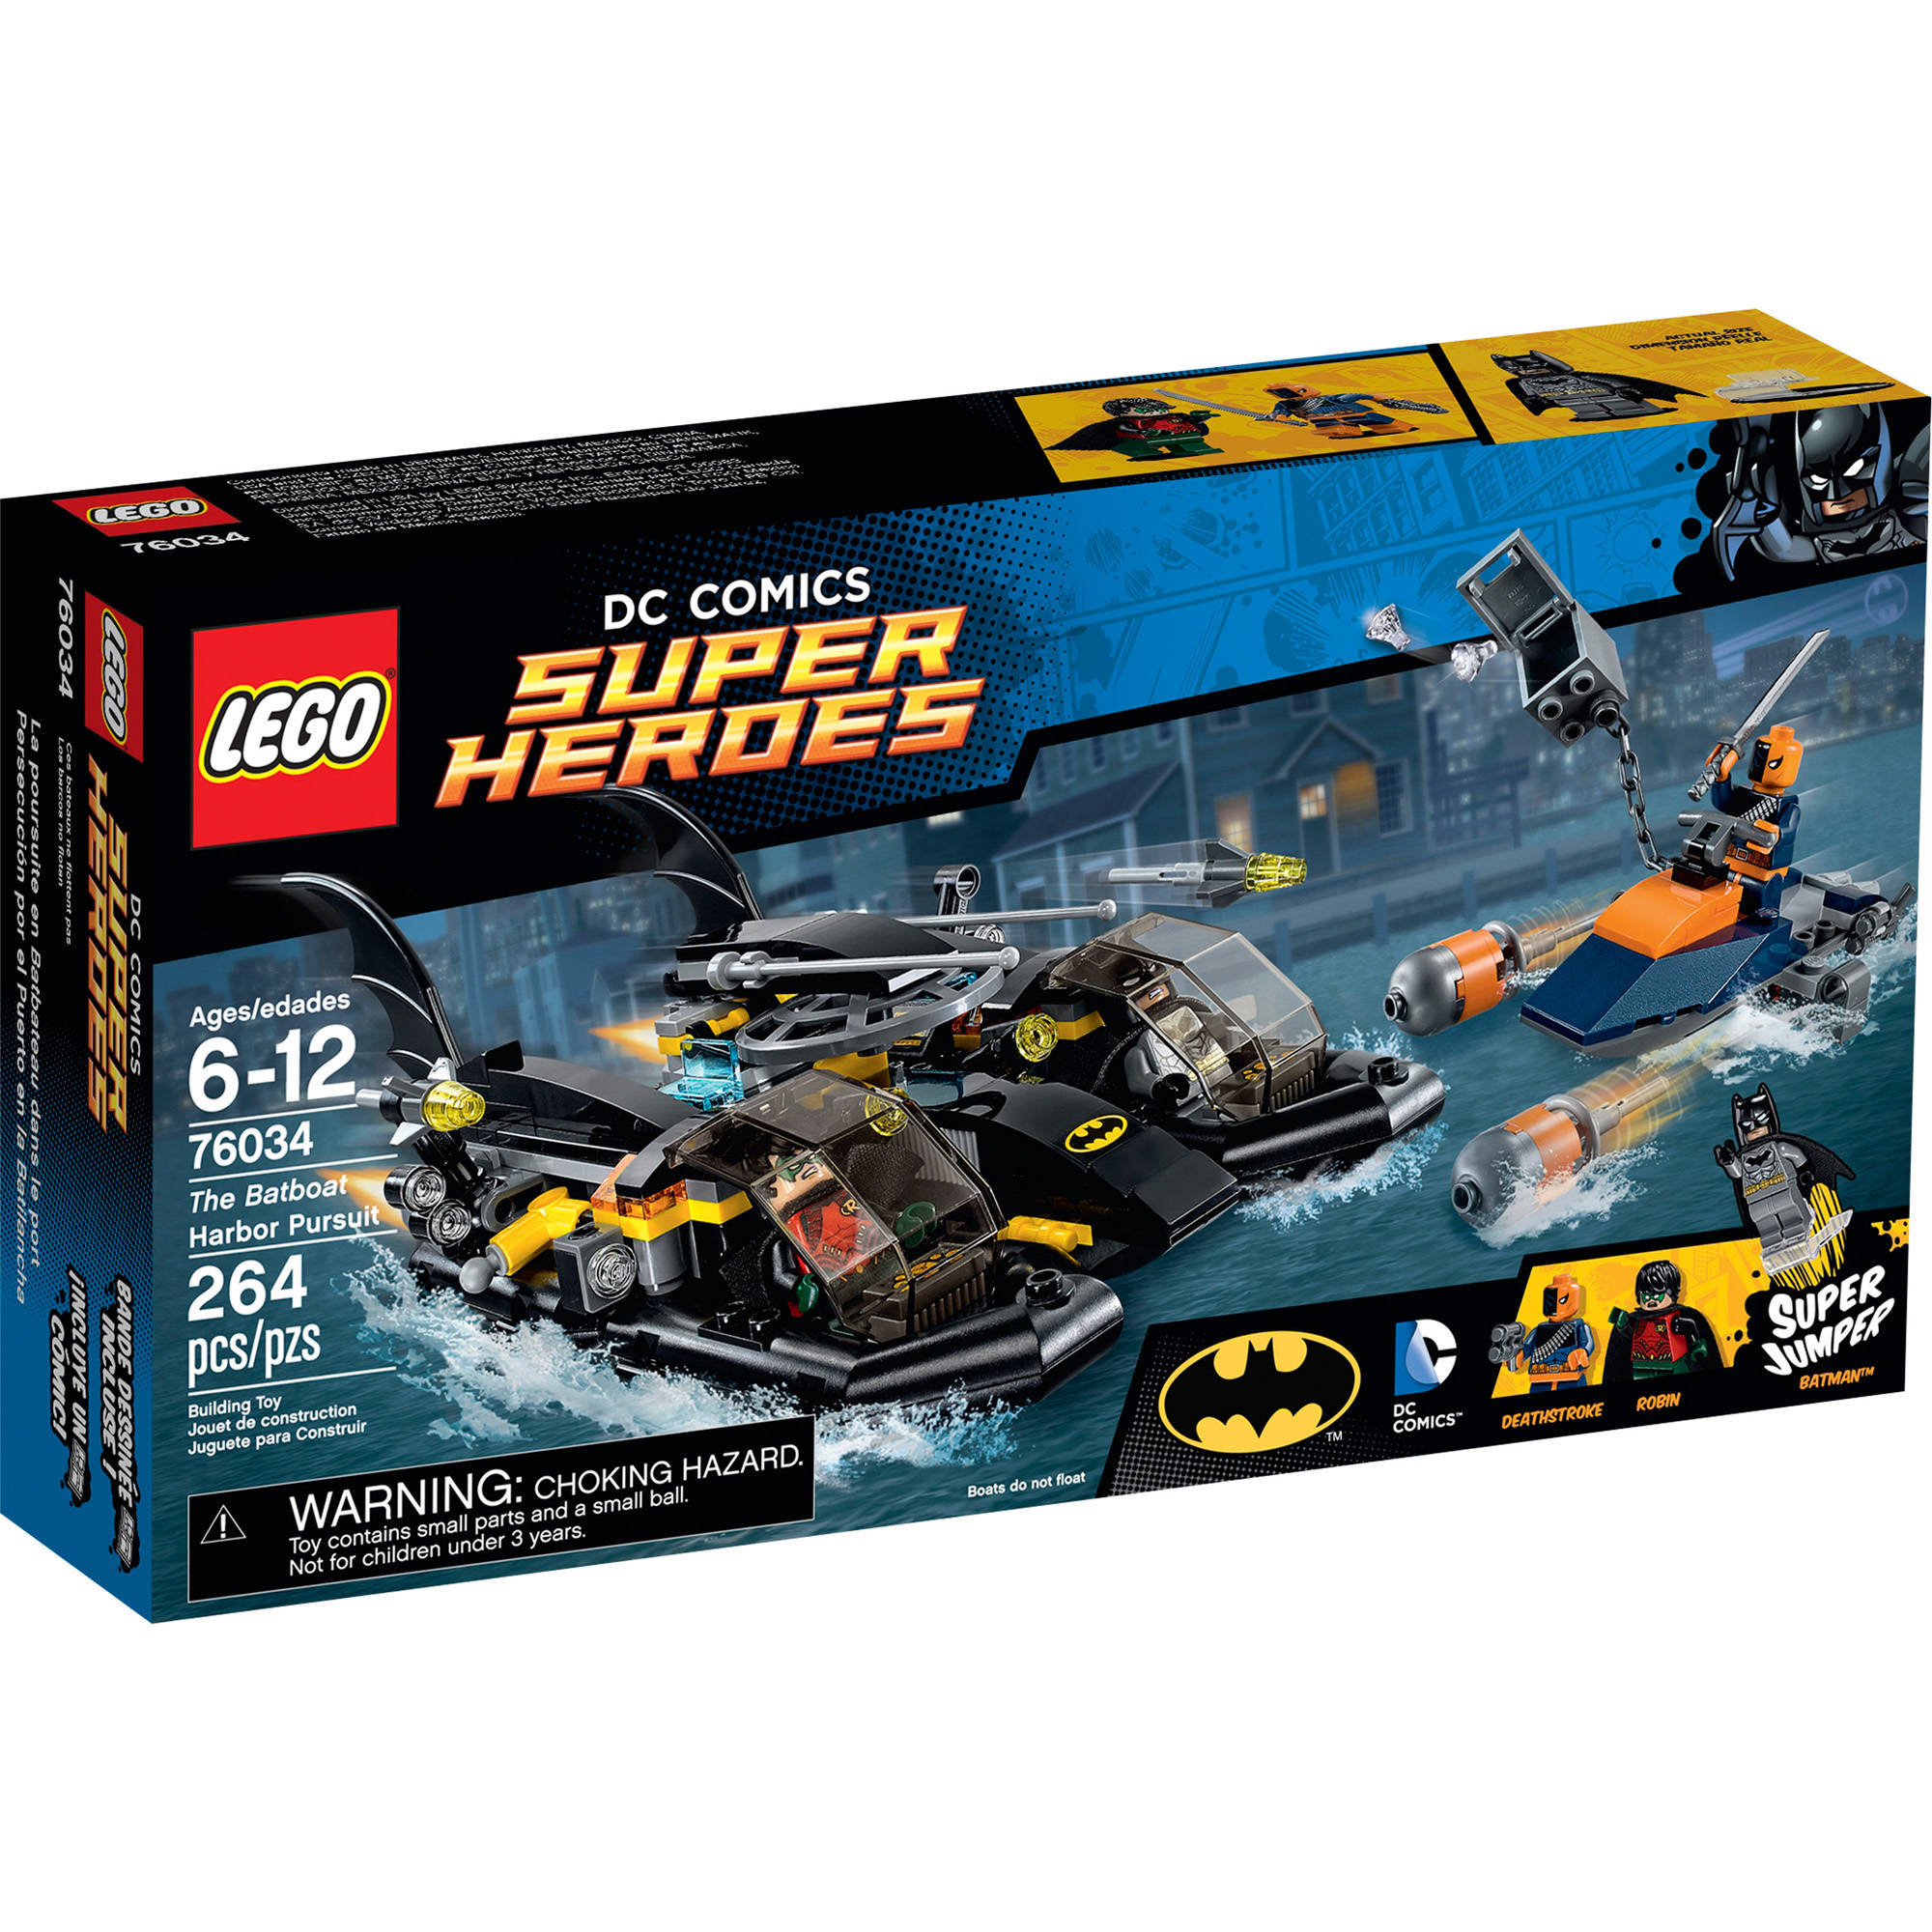 LEGO Super Heroes The Batboat Harbor Pursuit, 76034